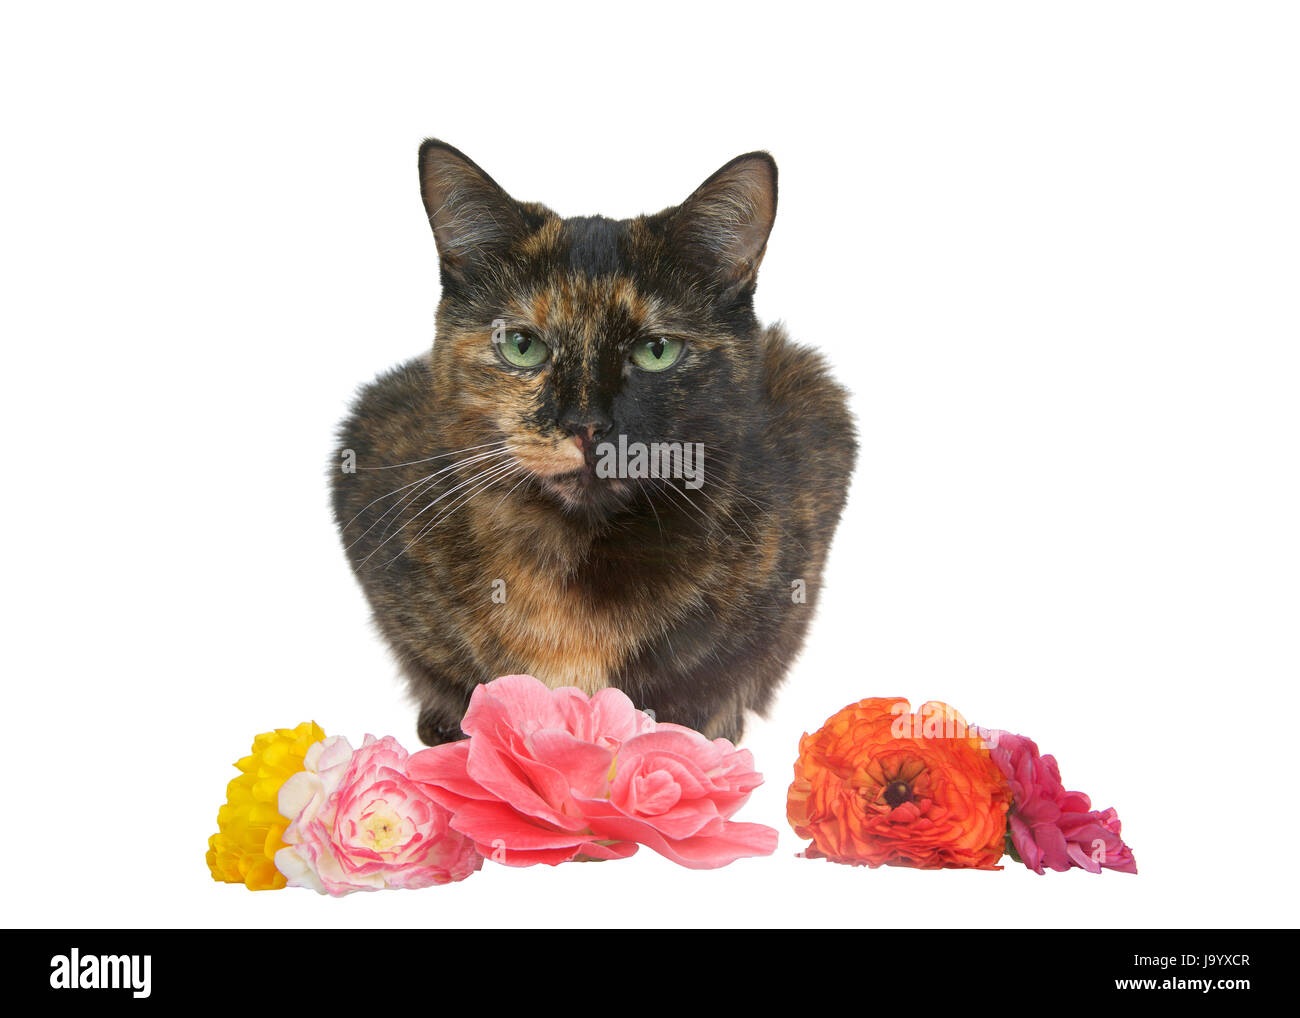 One tortie torbie tabby cat crouched down with flowers in front of her. Isolated on a white background. - Stock Image